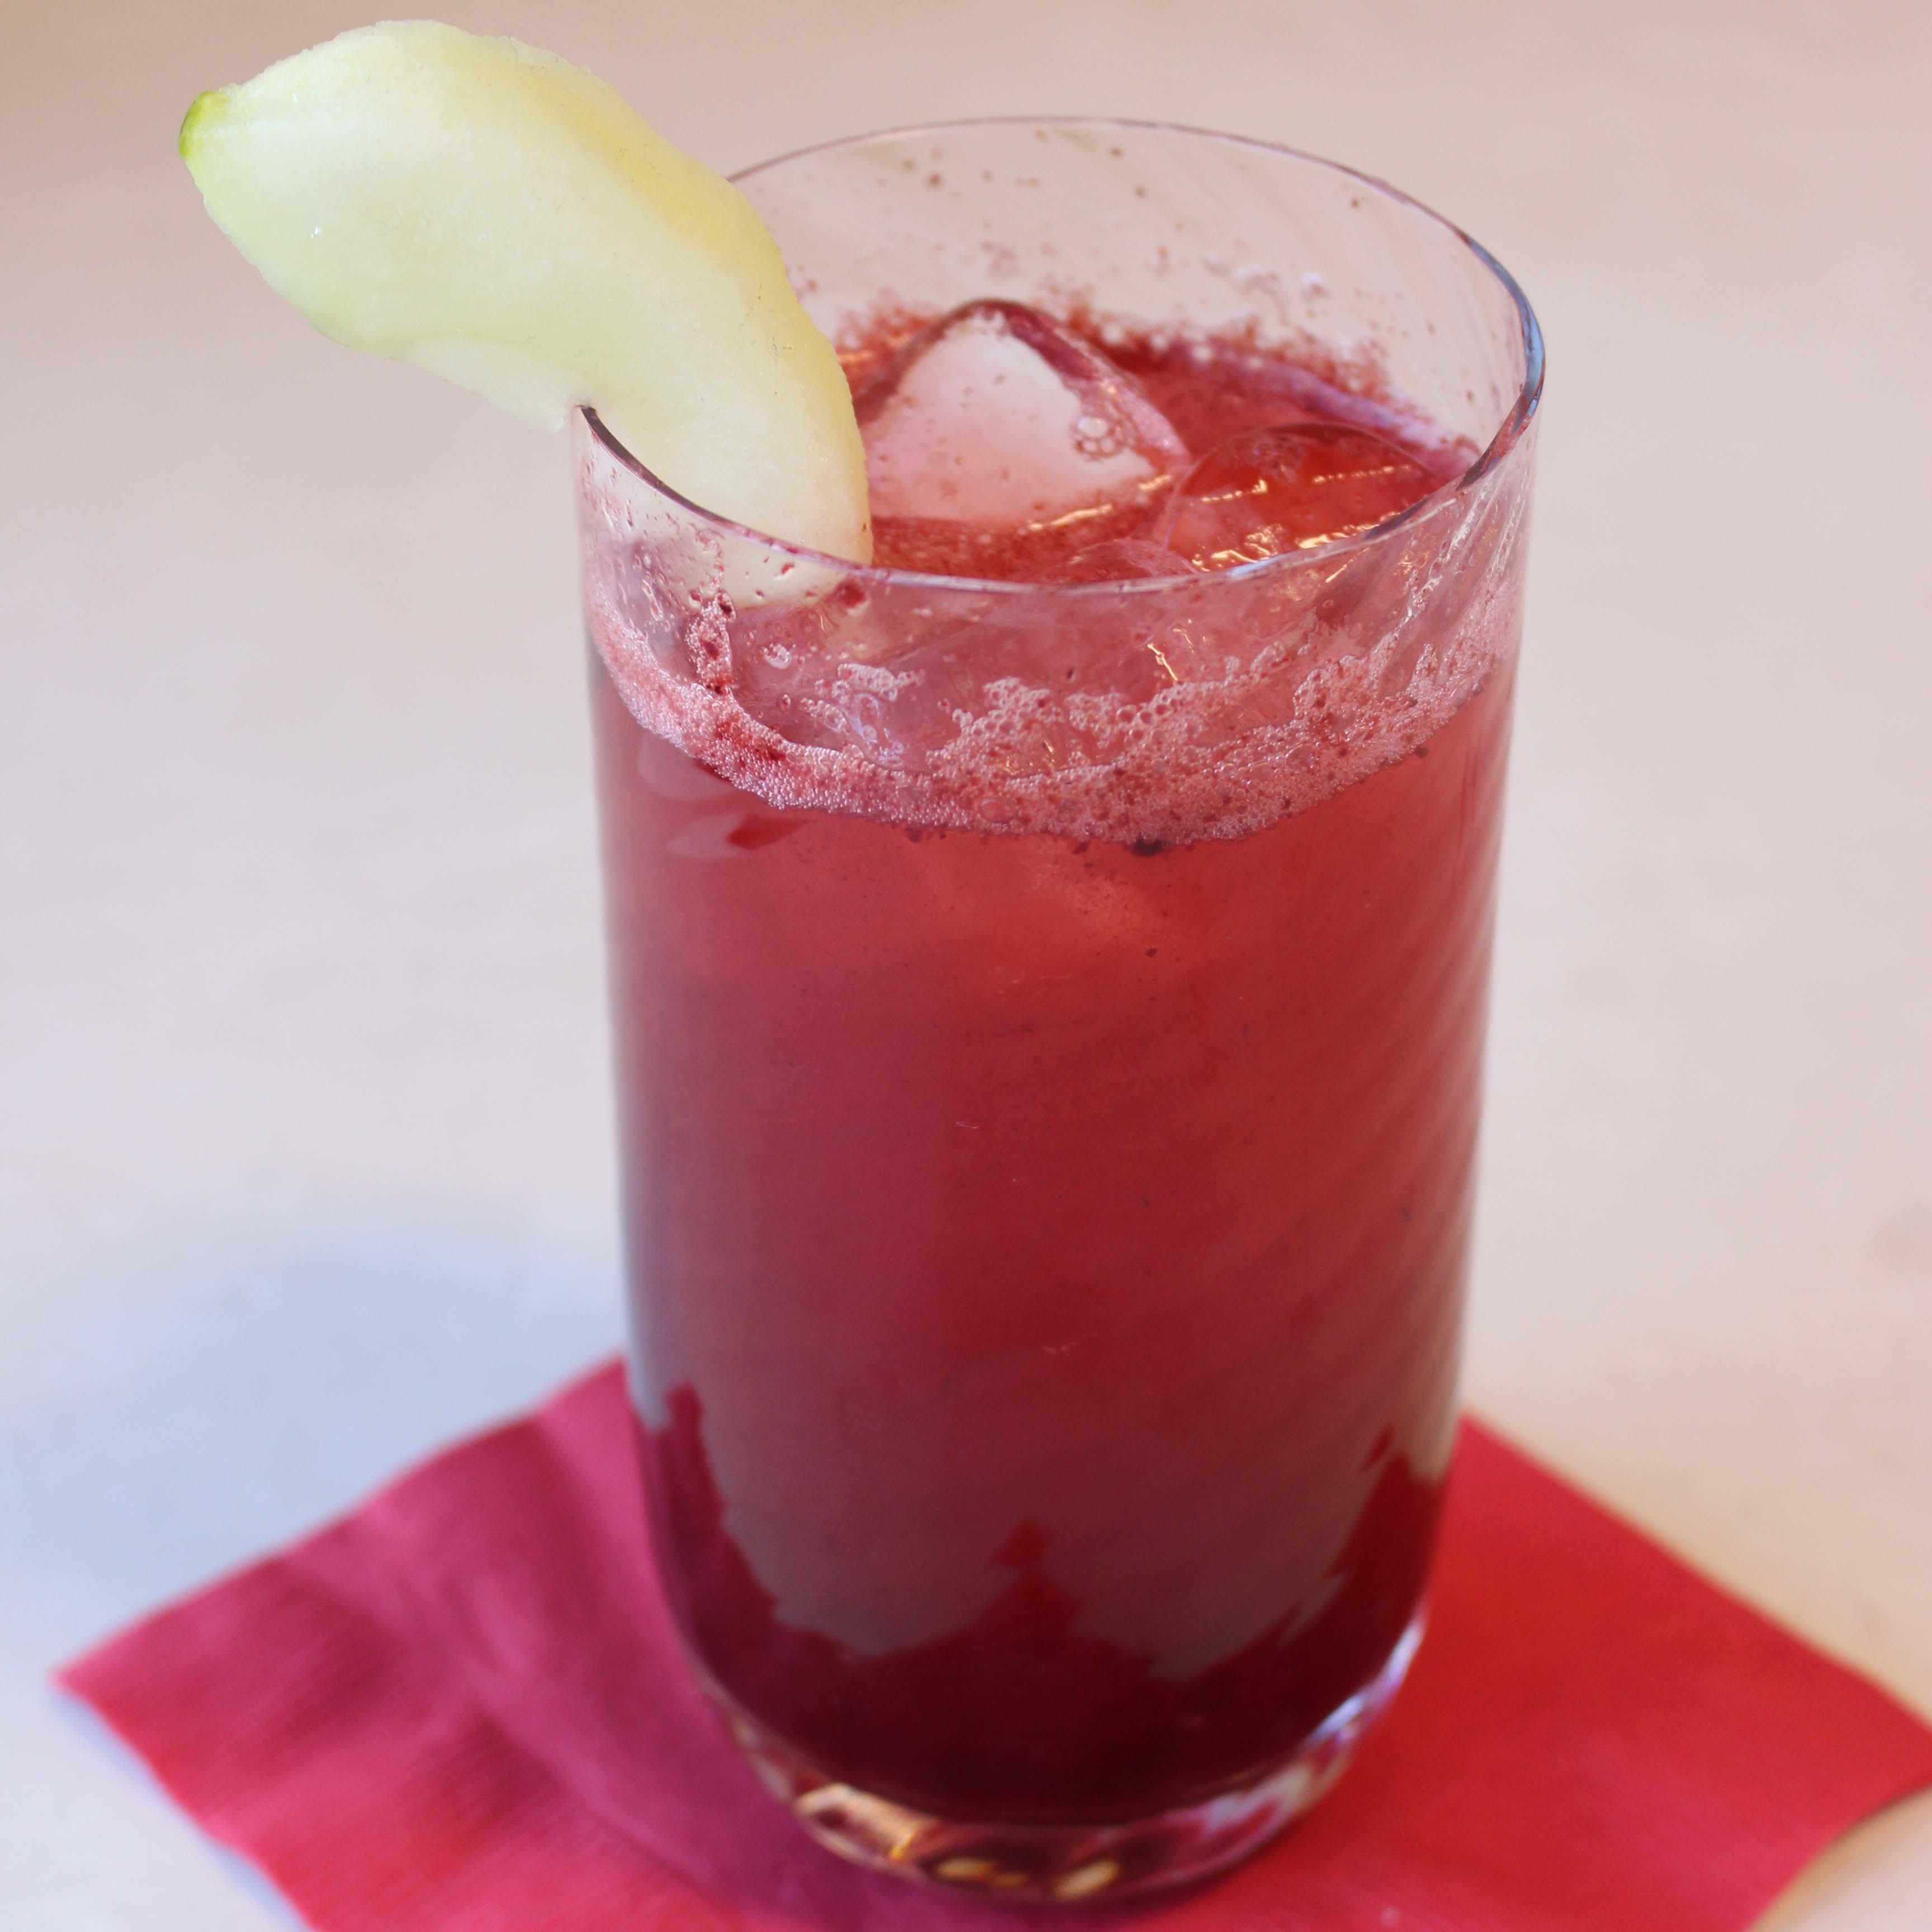 Blackberry Apple Cider Vinegar Shrub